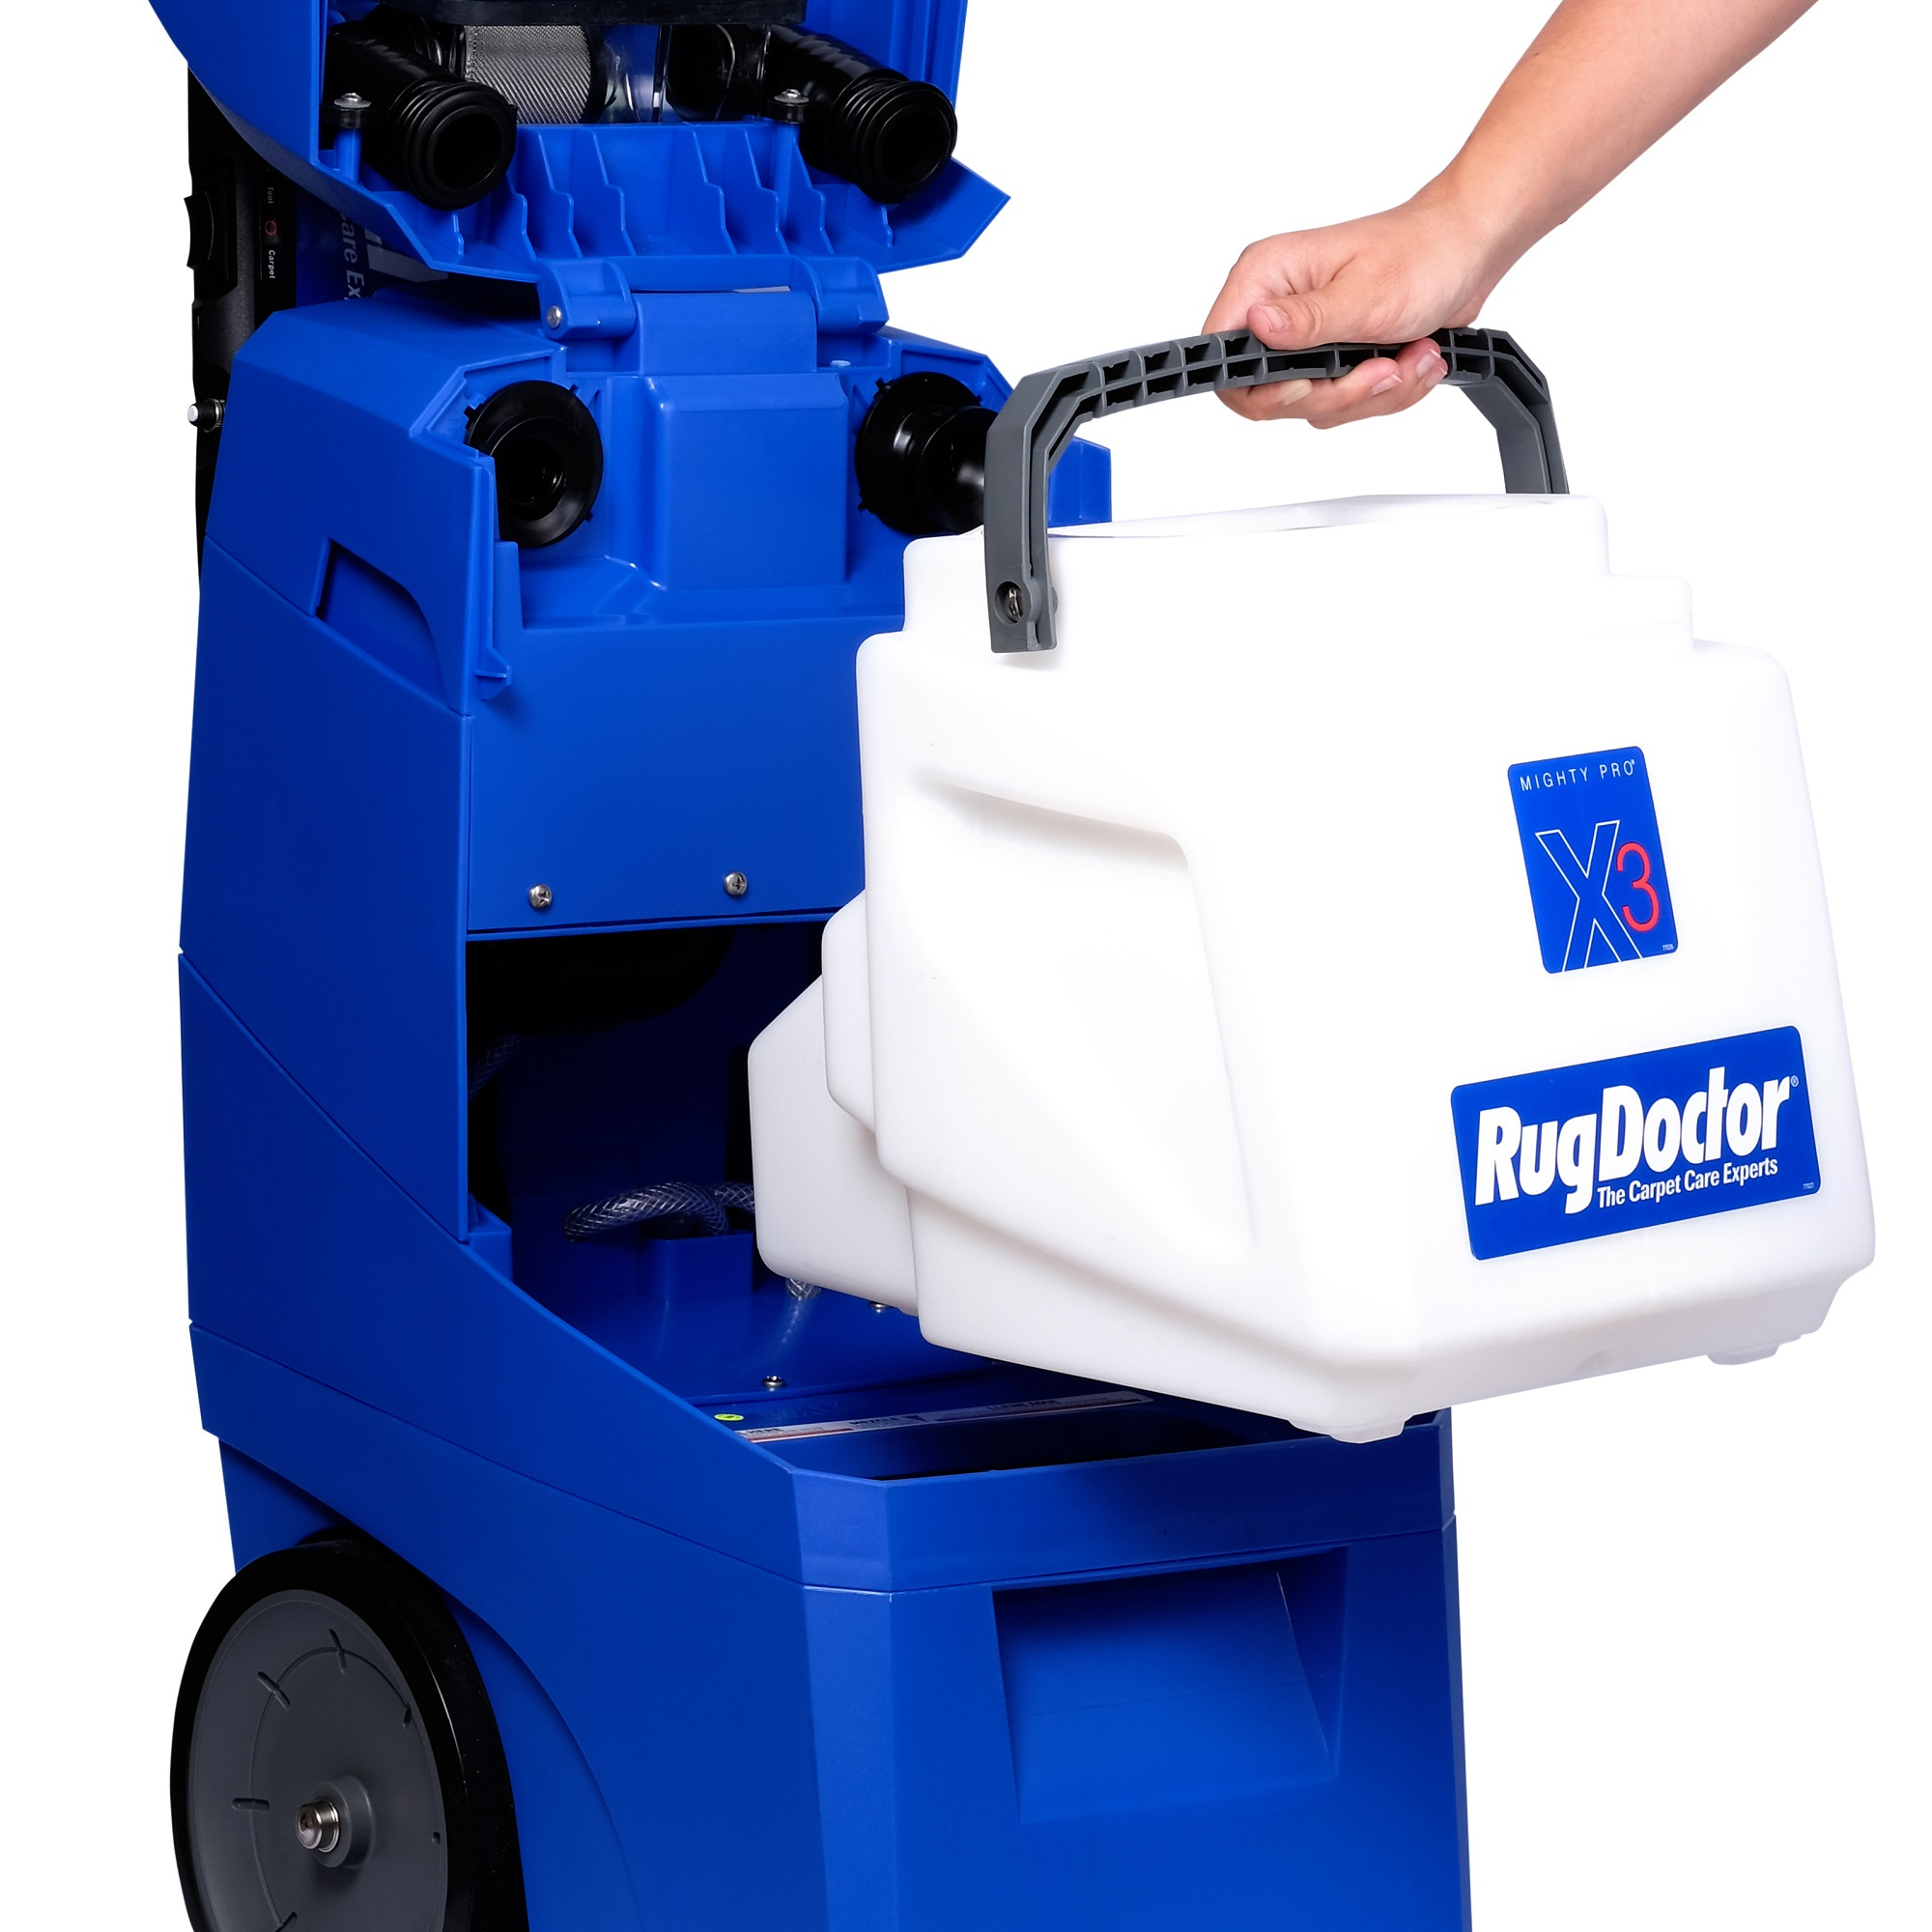 Rug Doctor Mighty Pro X3 Deep Carpet Cleaning Machine Removes Pet Stains And Neutralizes Odors